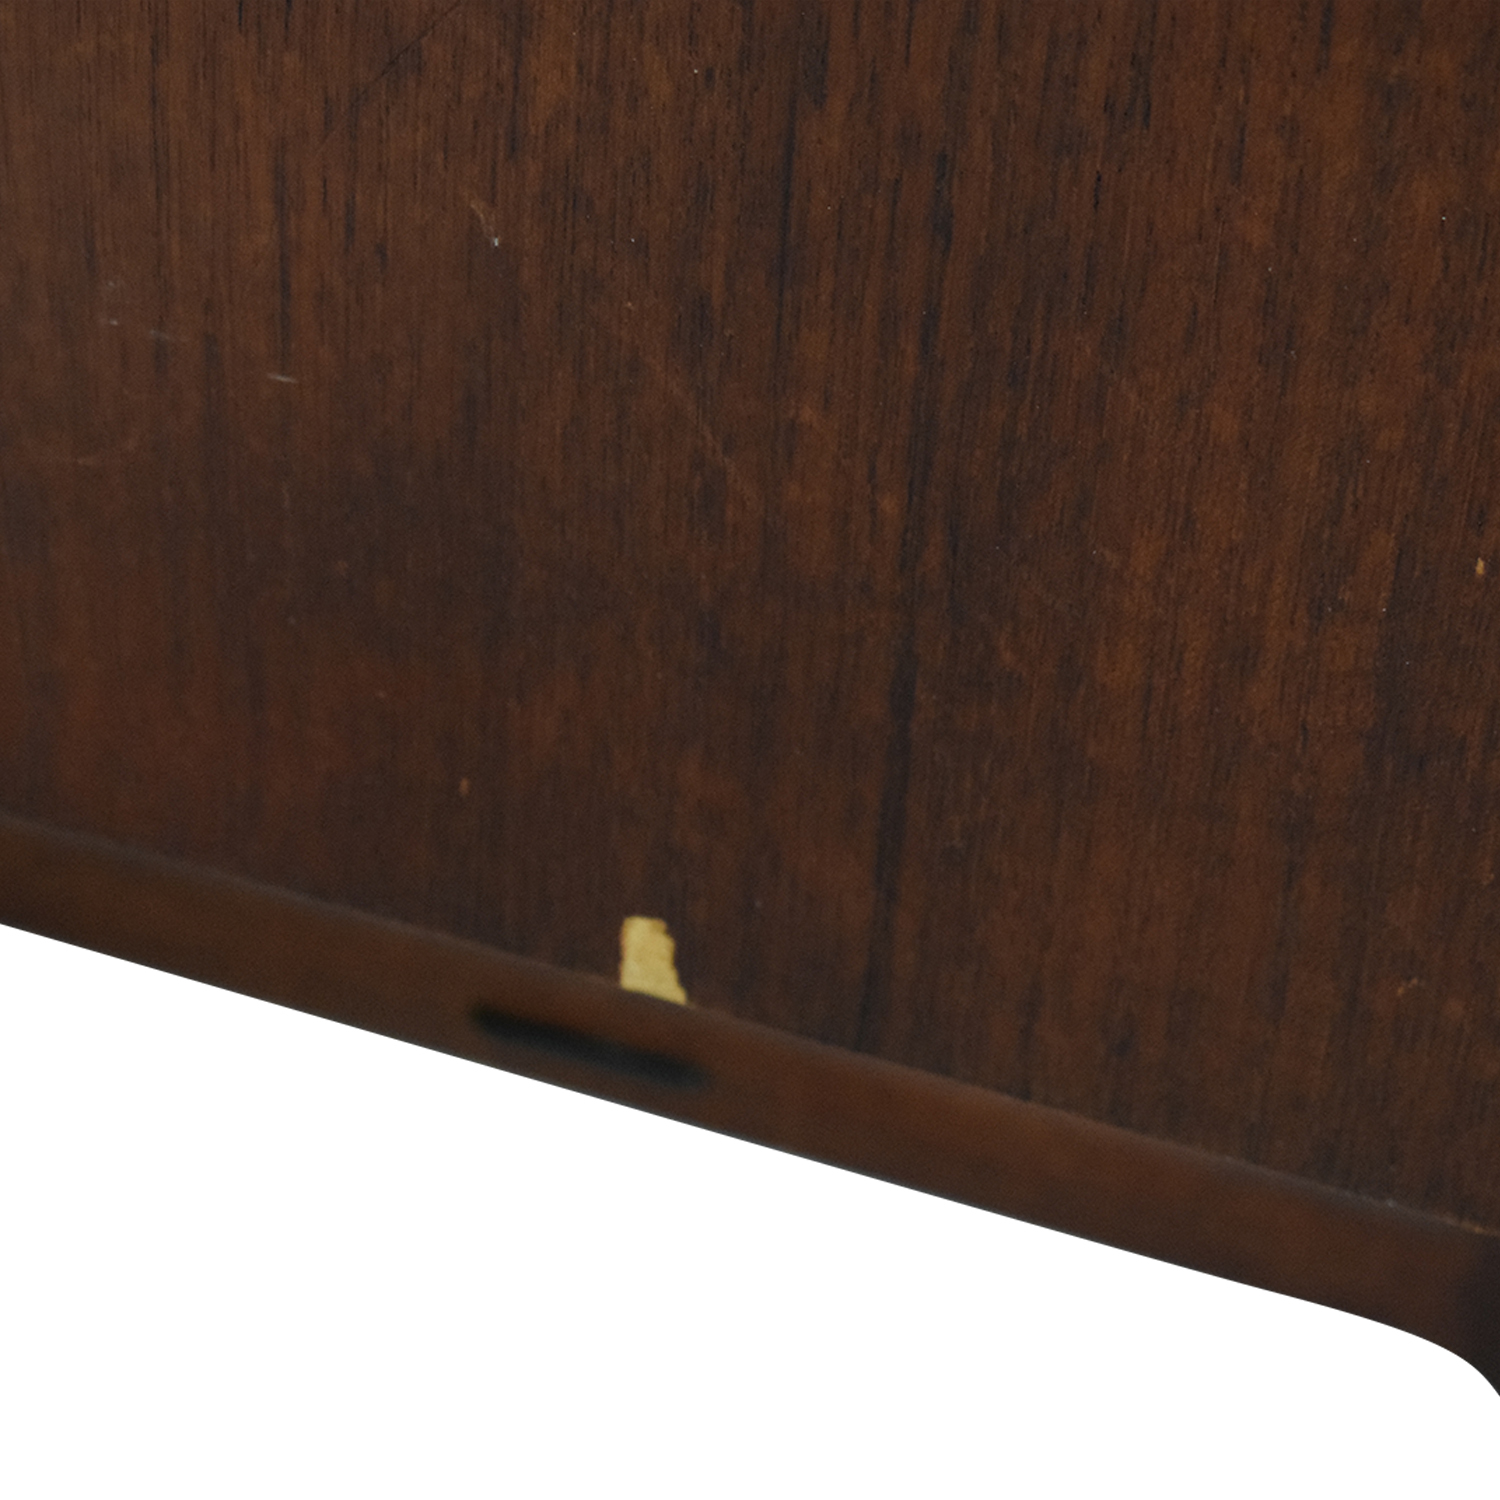 ABC Carpet & Home ABC Carpet & Home Danish Wood Two-Drawer Sideboard used